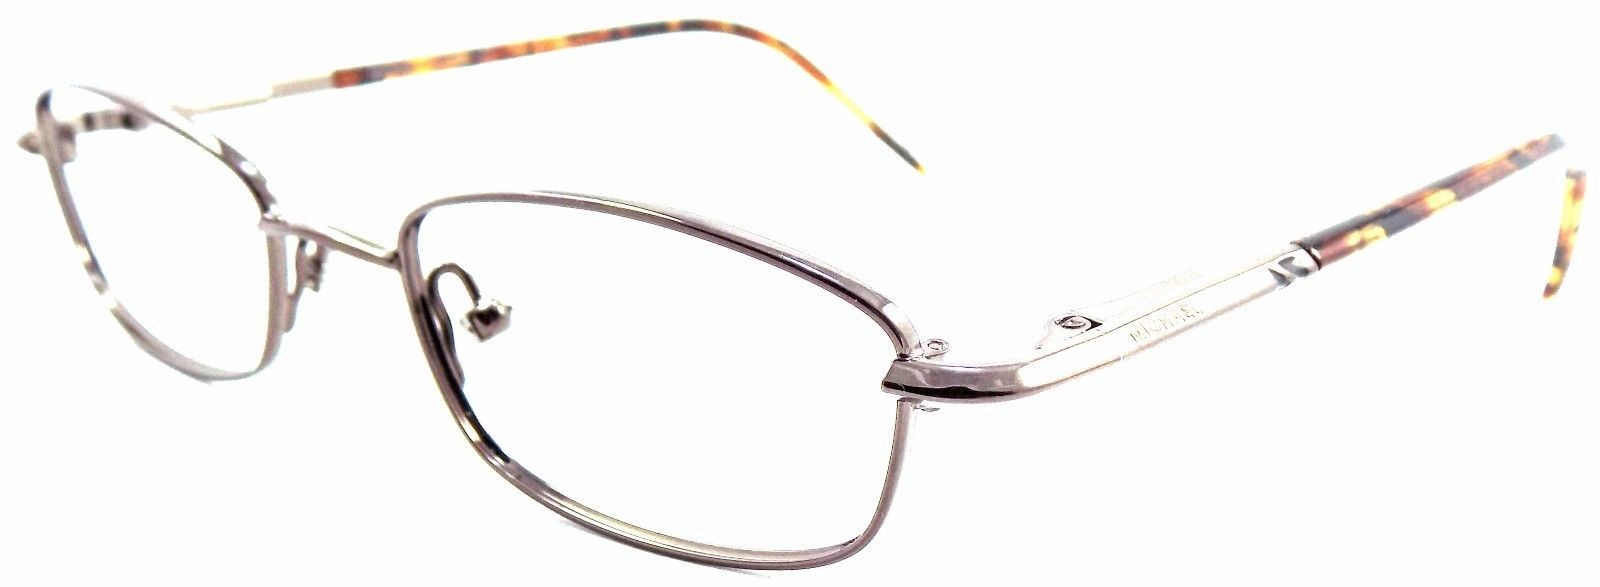 Michael Kors M2411 200 Rx Eyeglasses Frame 47x17x130 Dark Brown Tortoise Ladies